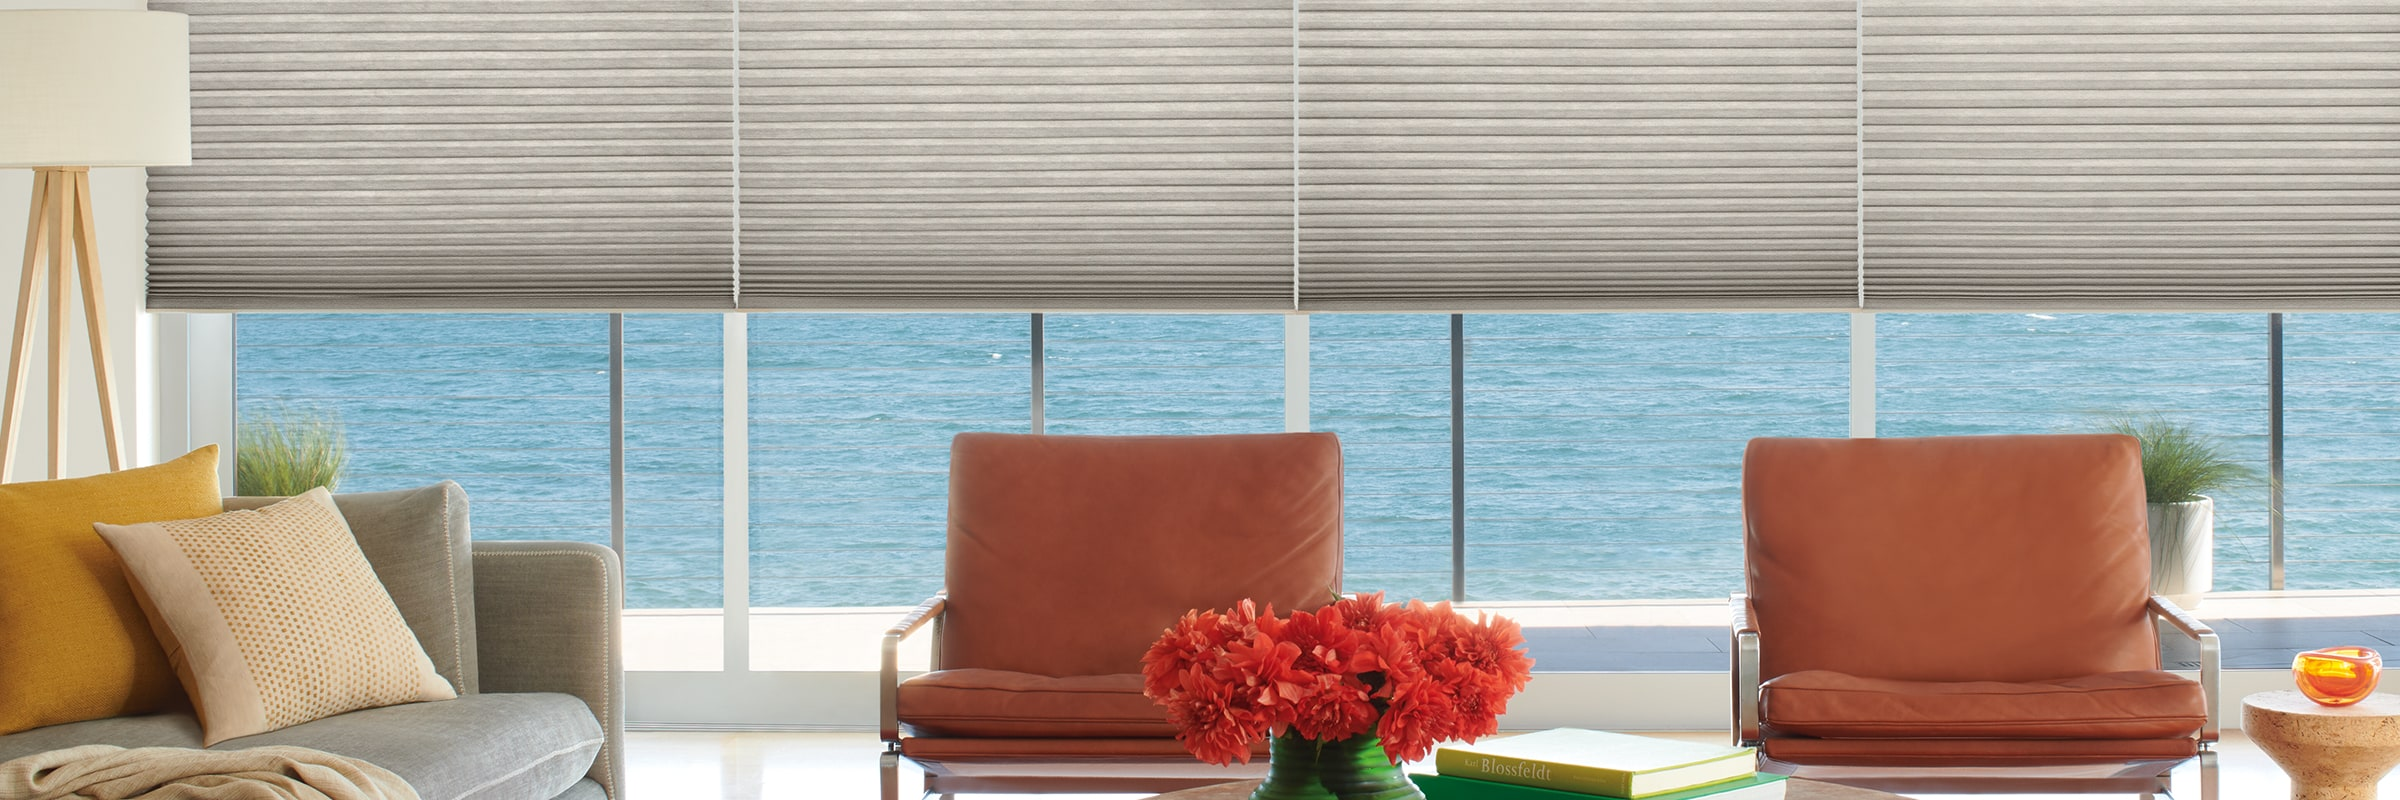 Honeycomb blinds in Architella Alexa Metallic™ Ceti - Duette